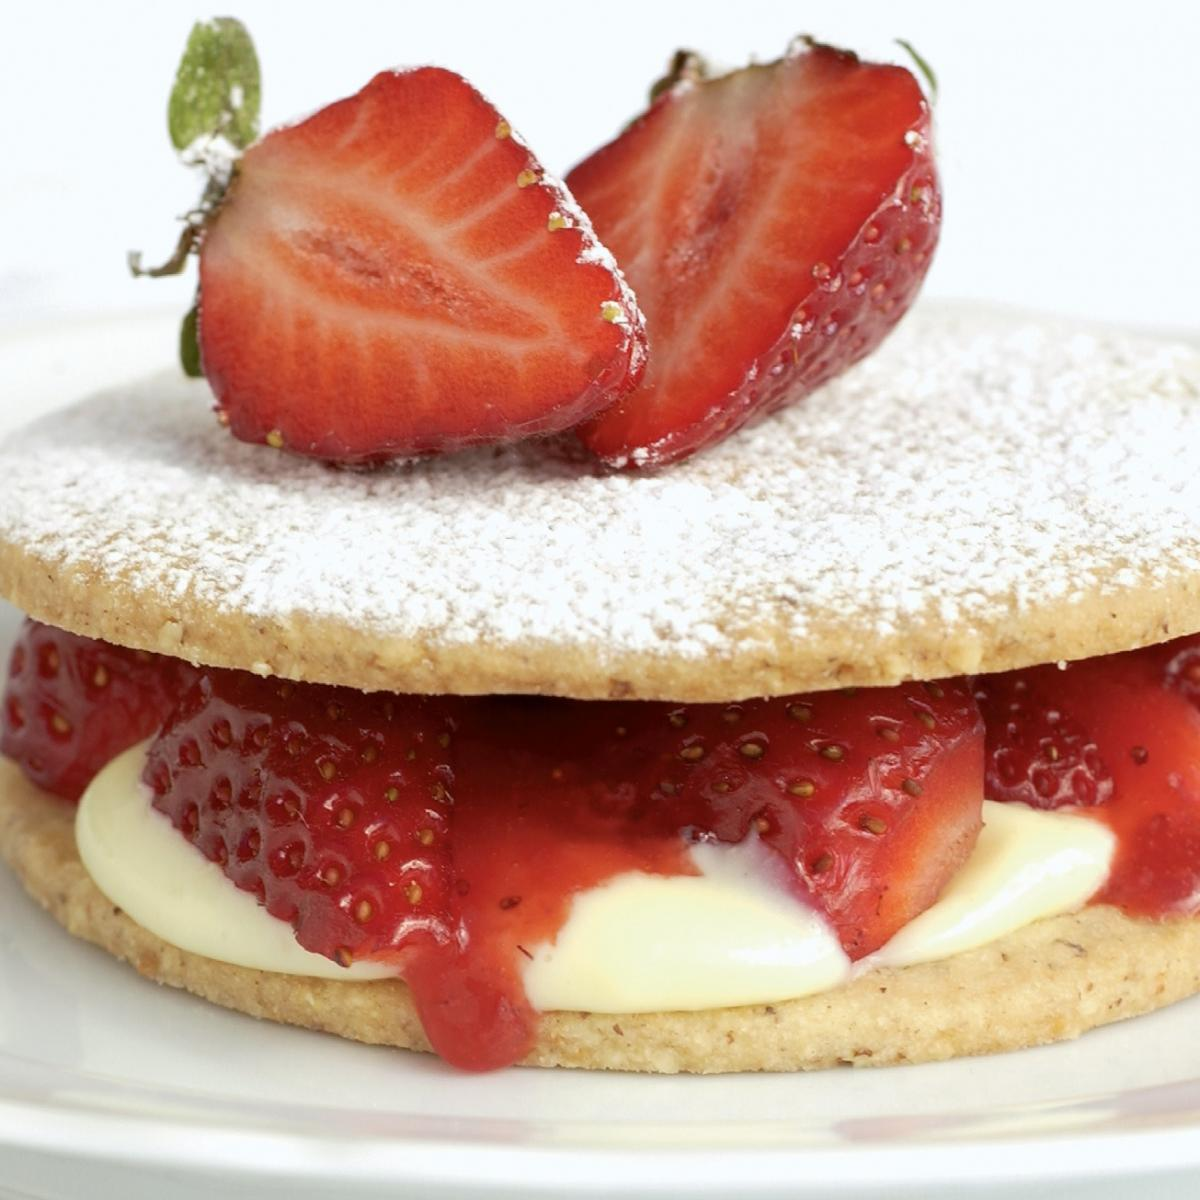 A picture of Delia's Strawberry Hazelnut Shortcakes with Strawberry Puree recipe